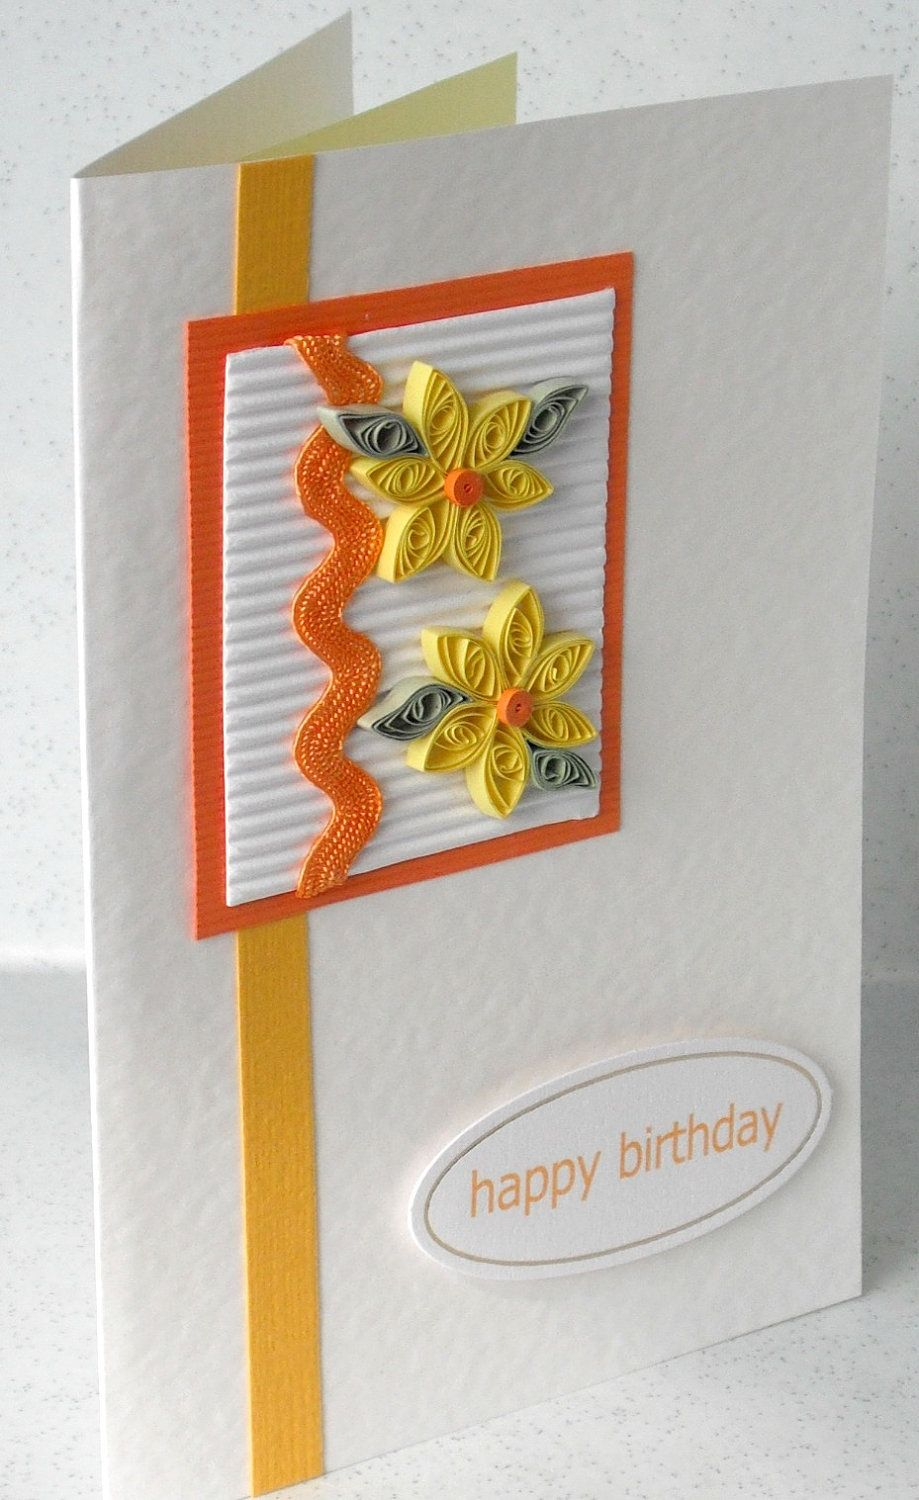 Birthday card quilled quilling daisies orange and lemon handmade